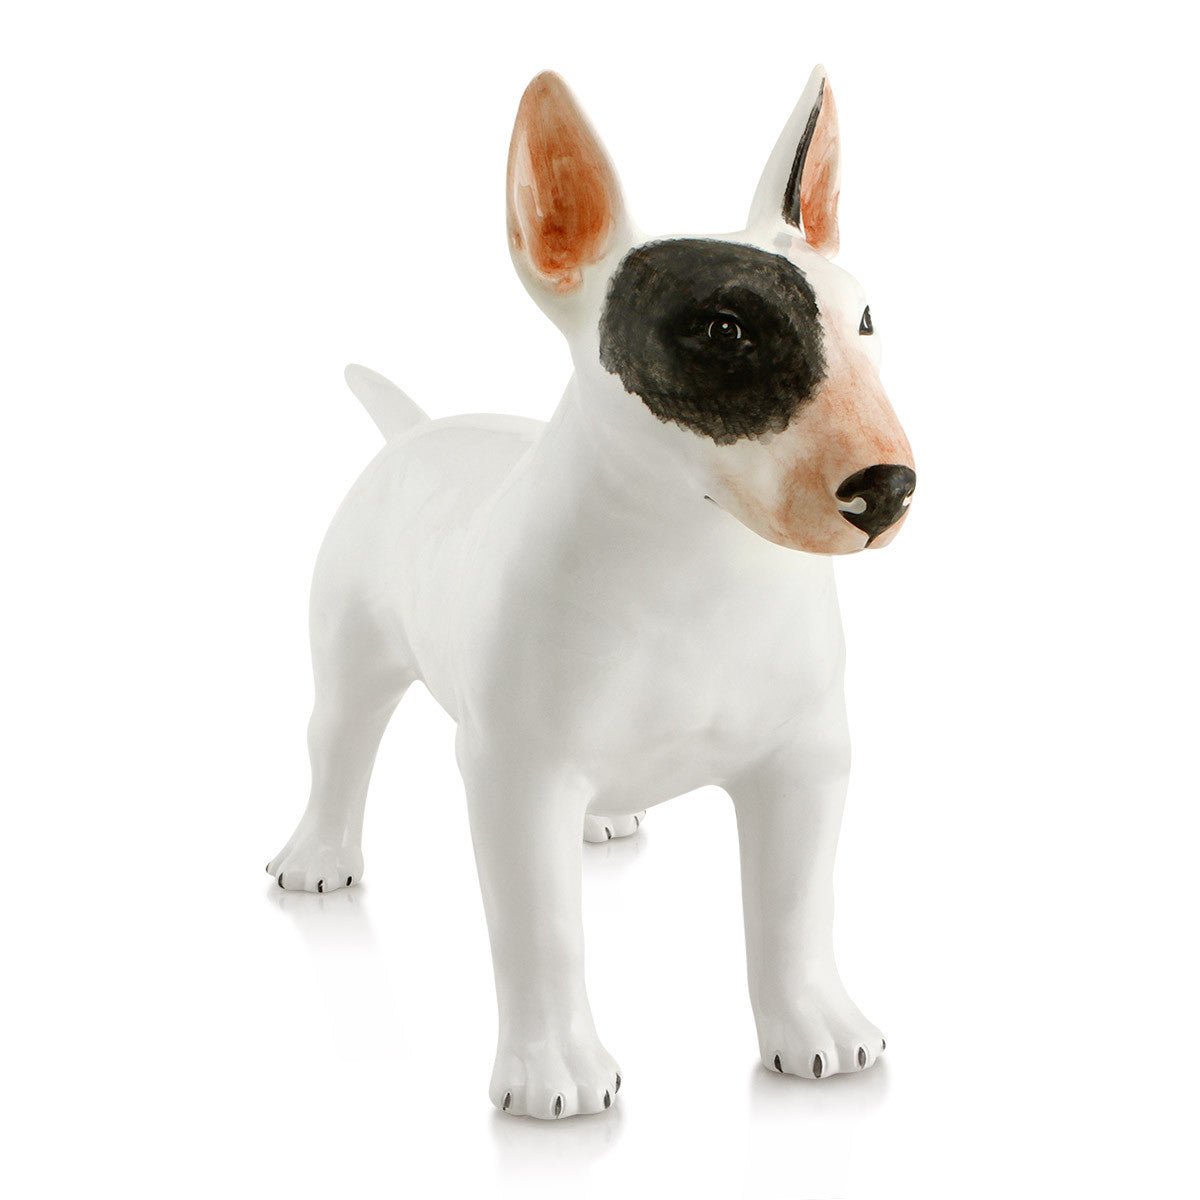 Bull Terrier dog hand-painted ceramic porcelain finished in natural color